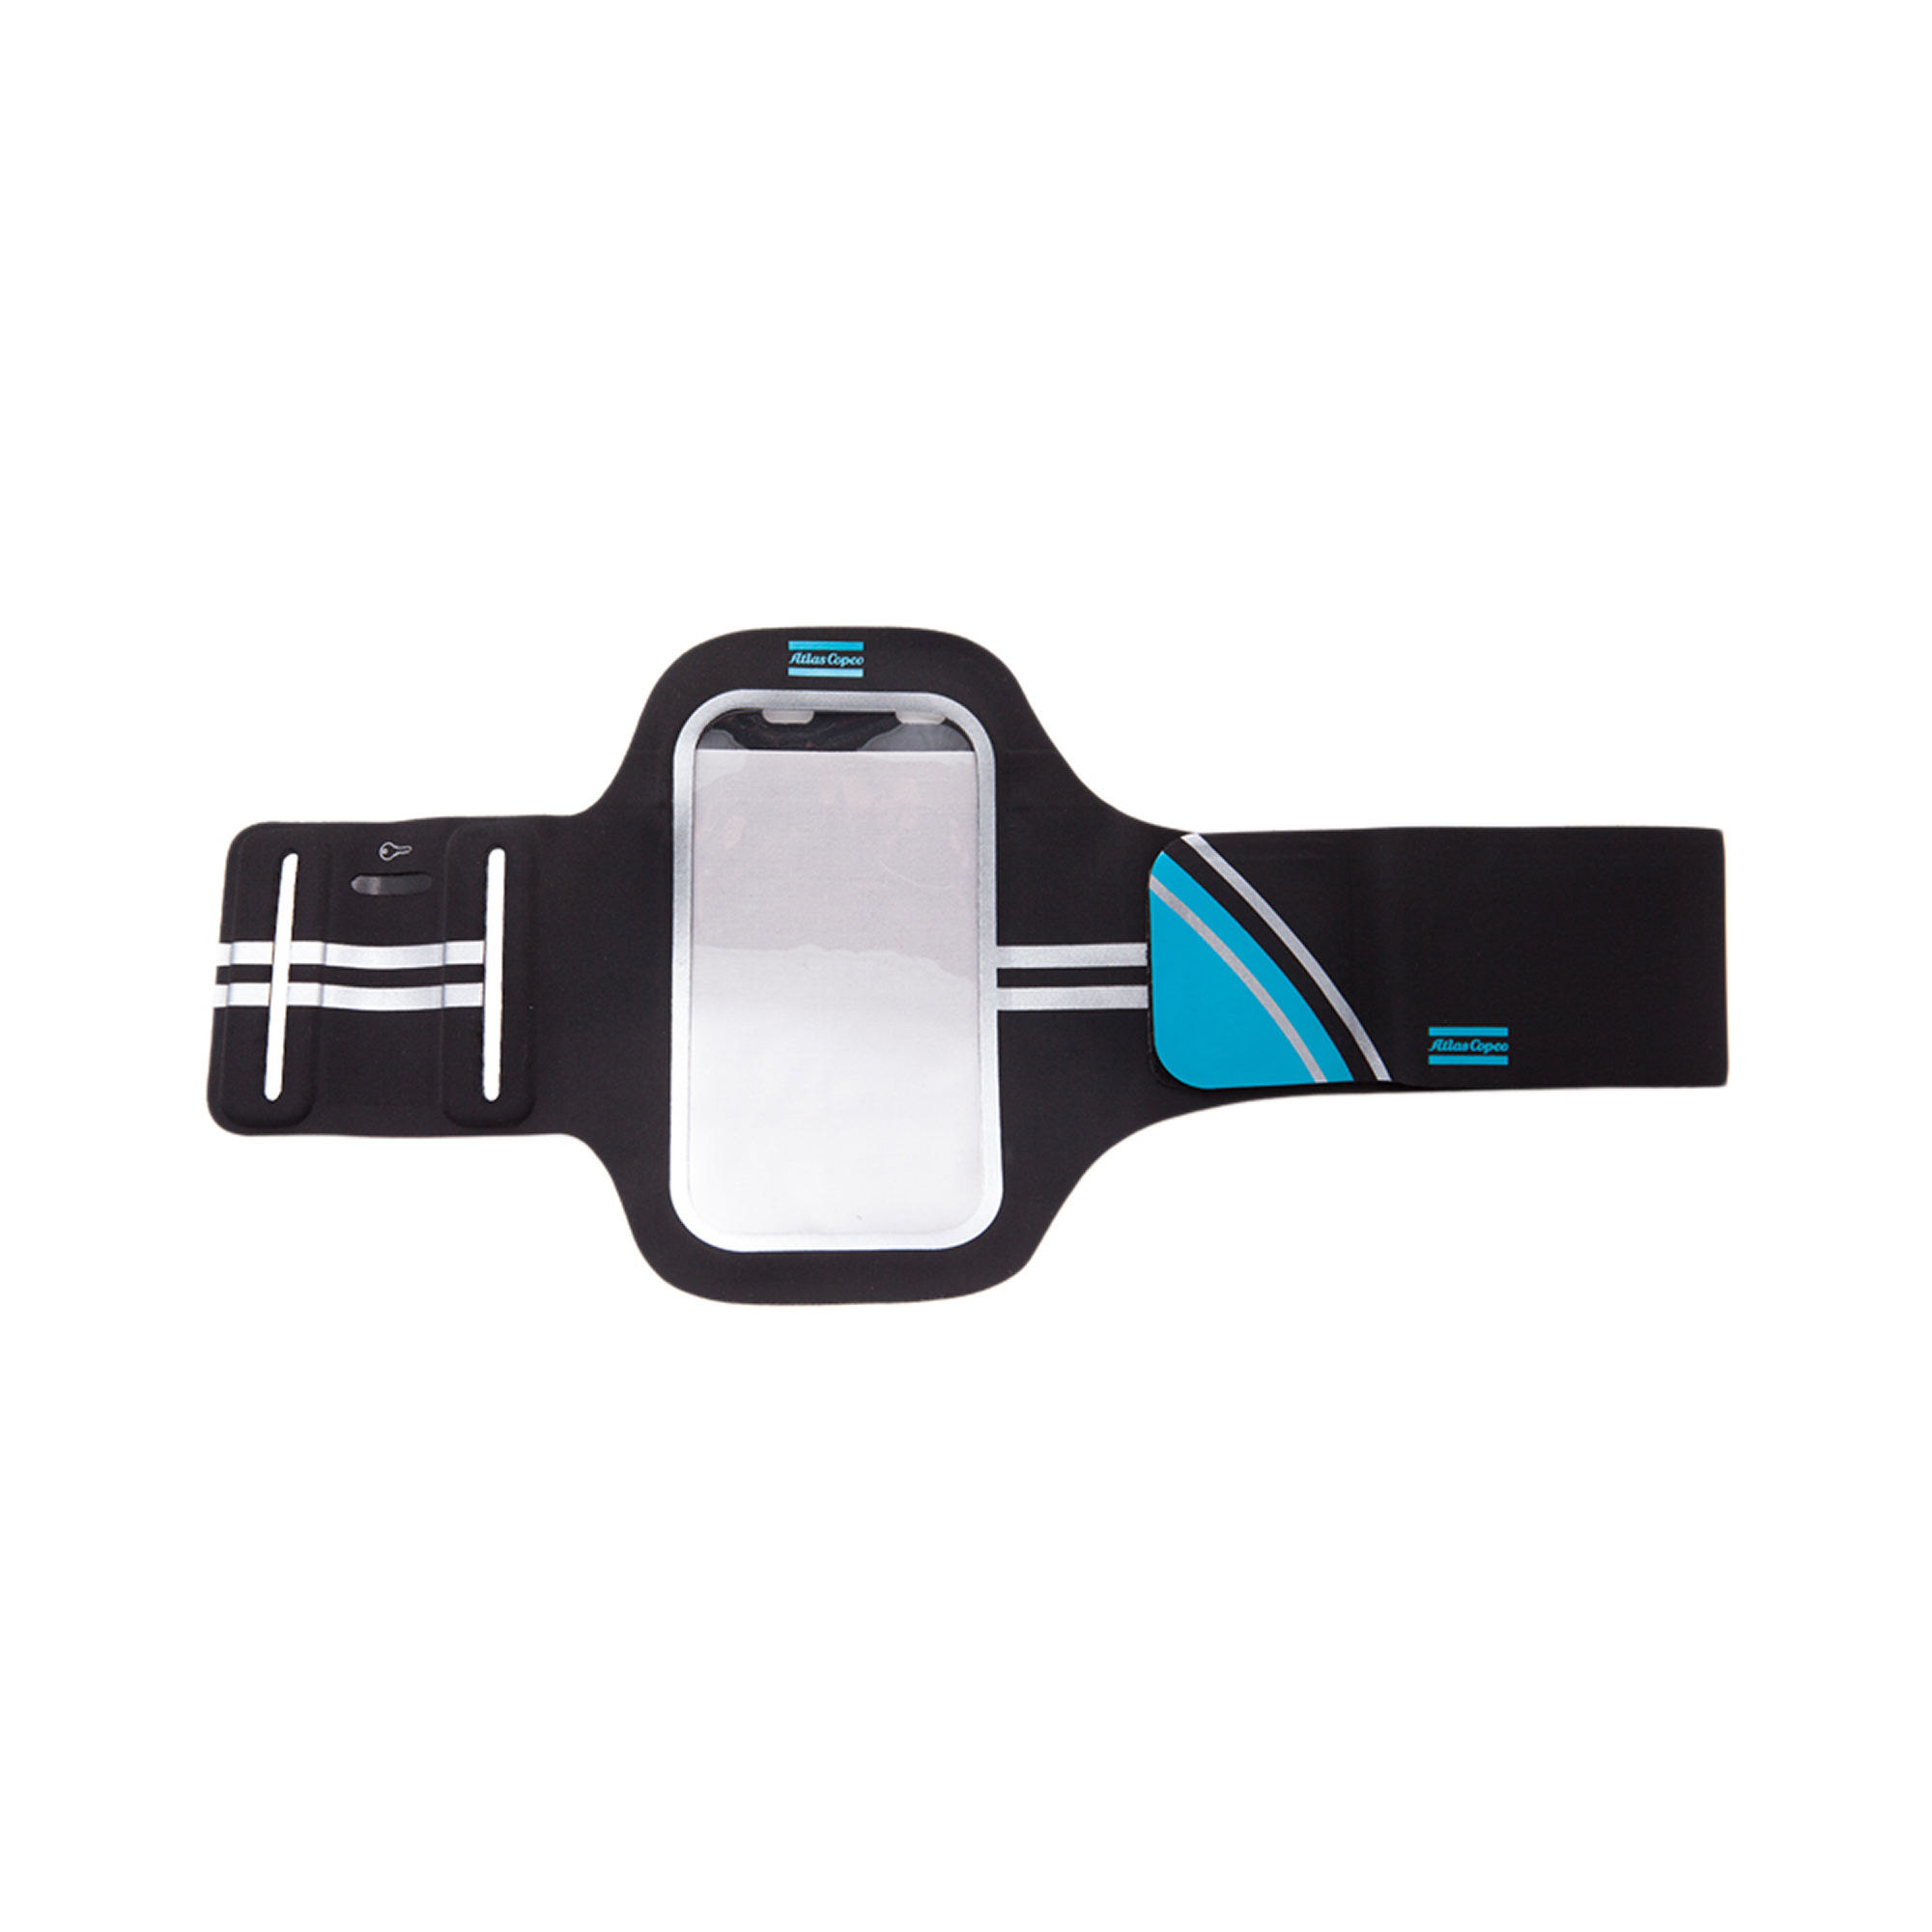 A useful accessory designed to hold your phone securely on your arm when you're out running or working out at the gym. The Performance Armband is adjustable to fit your arm comfortably. It has a watertight opening for a headphone cable and a secure pocket for small items such as keys. Listen to your favorite music when you're working out and if a call or message comes in, you'll know about it. Made to accommodate IPhone 5, 6, Samsung Galaxy S3, S4, for example.